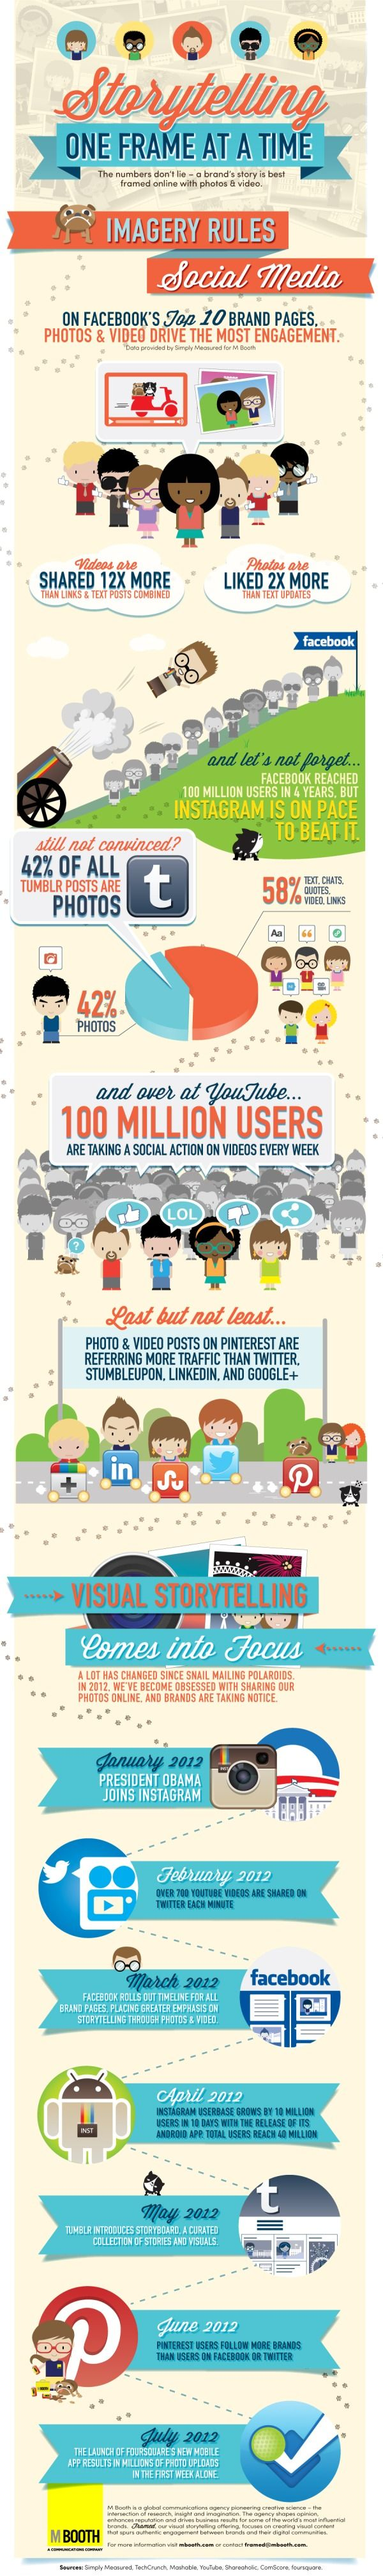 Photos Drive The Most Engagement on Facebook [INFOGRAPHIC